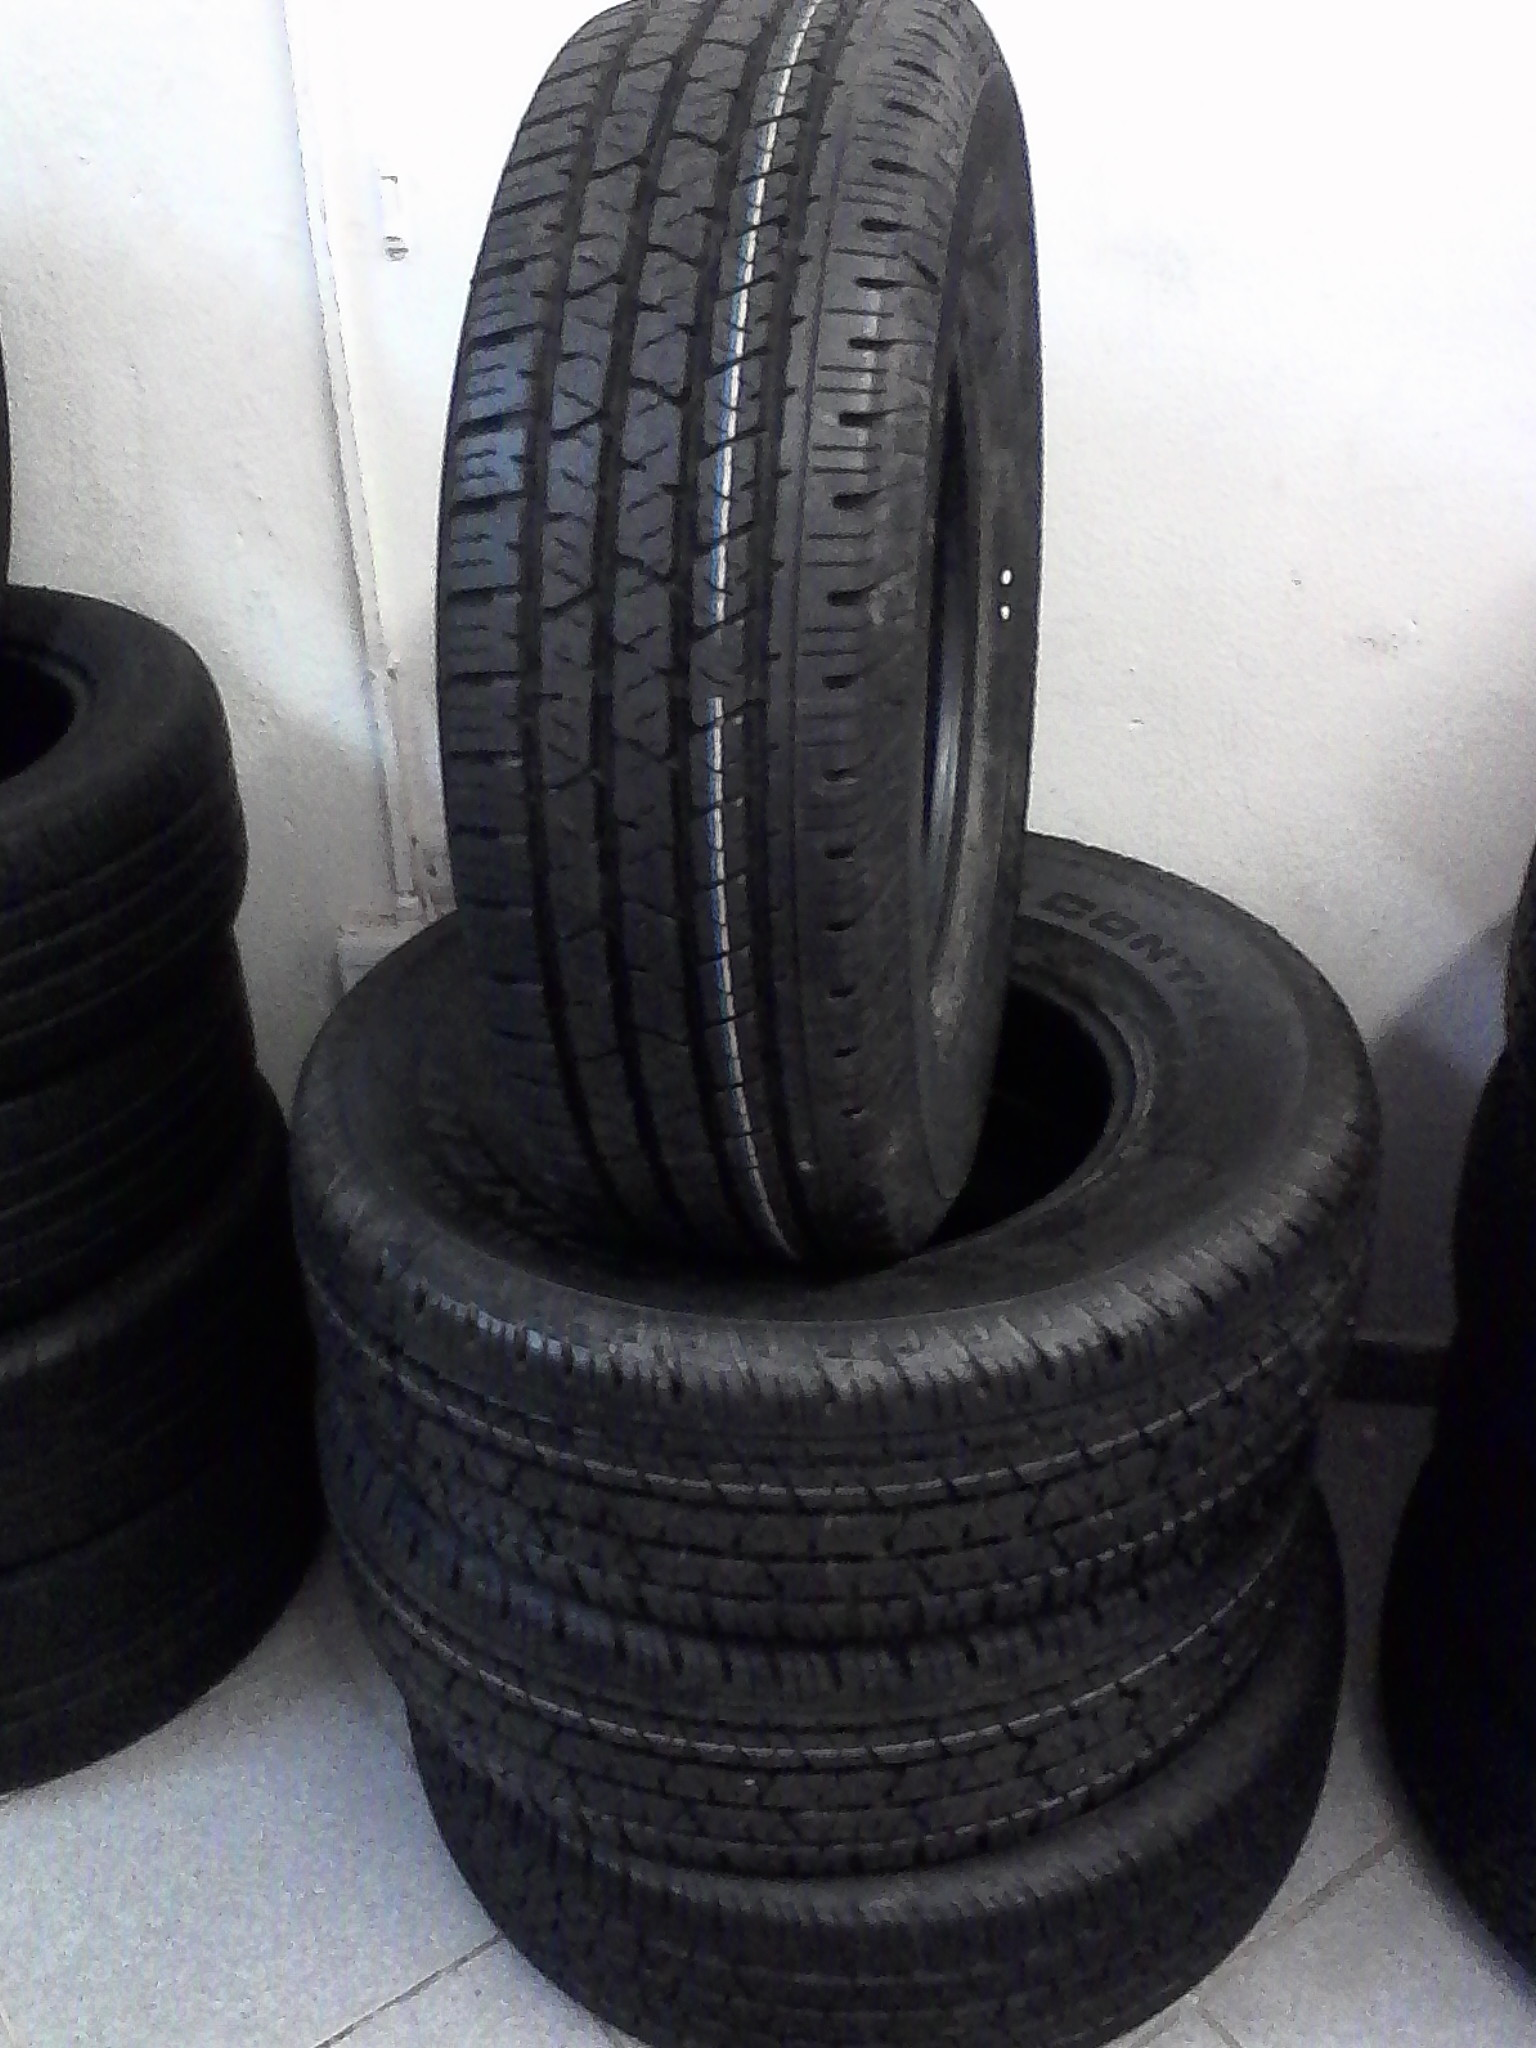 255/70/16 continental cross contact 4x new tyres for your bakkie or suv, r4699